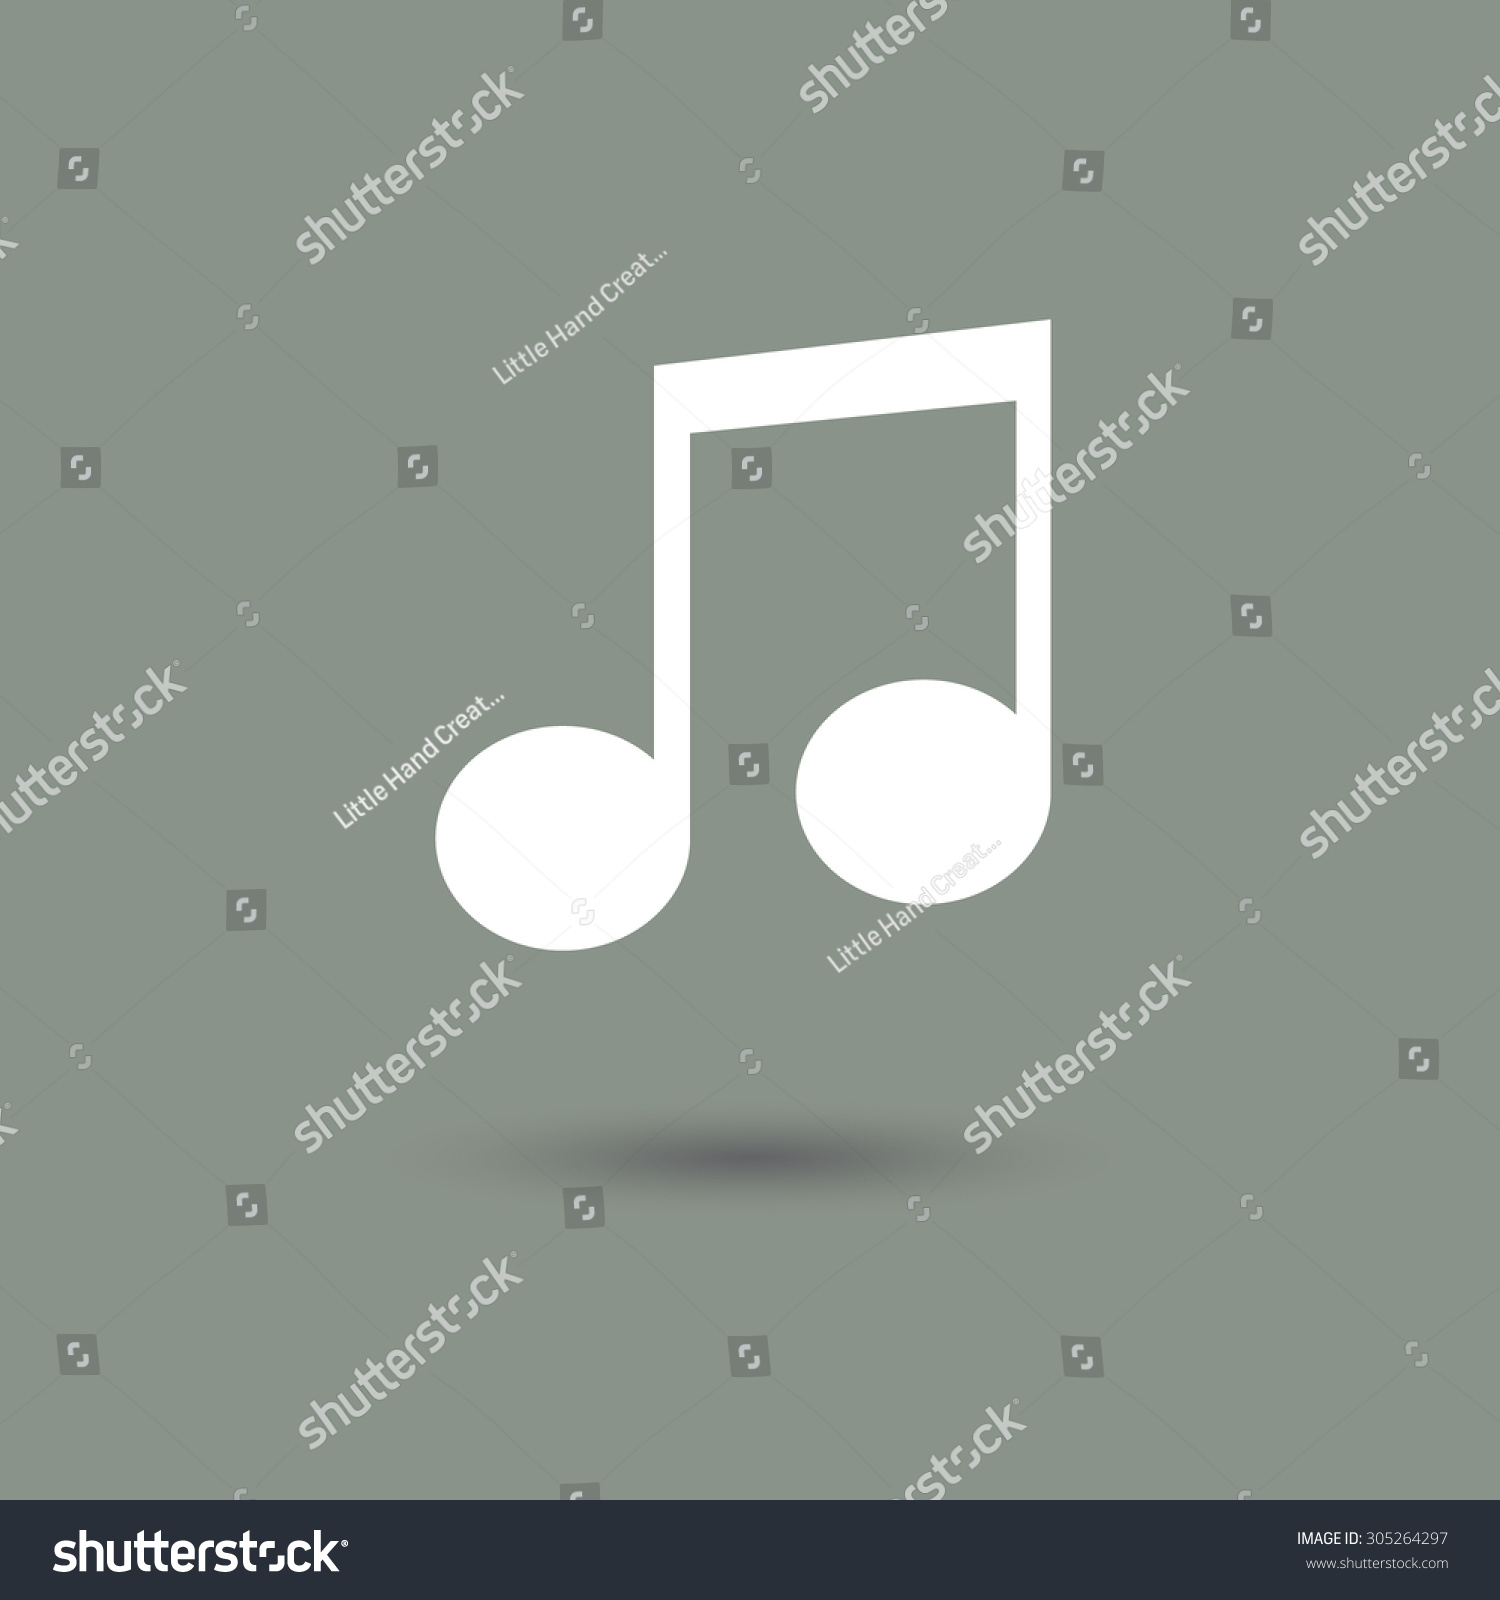 Sheet music icon modern style shadow stock vector 305264297 sheet music icon in modern style with shadow and gray background symbol of song and buycottarizona